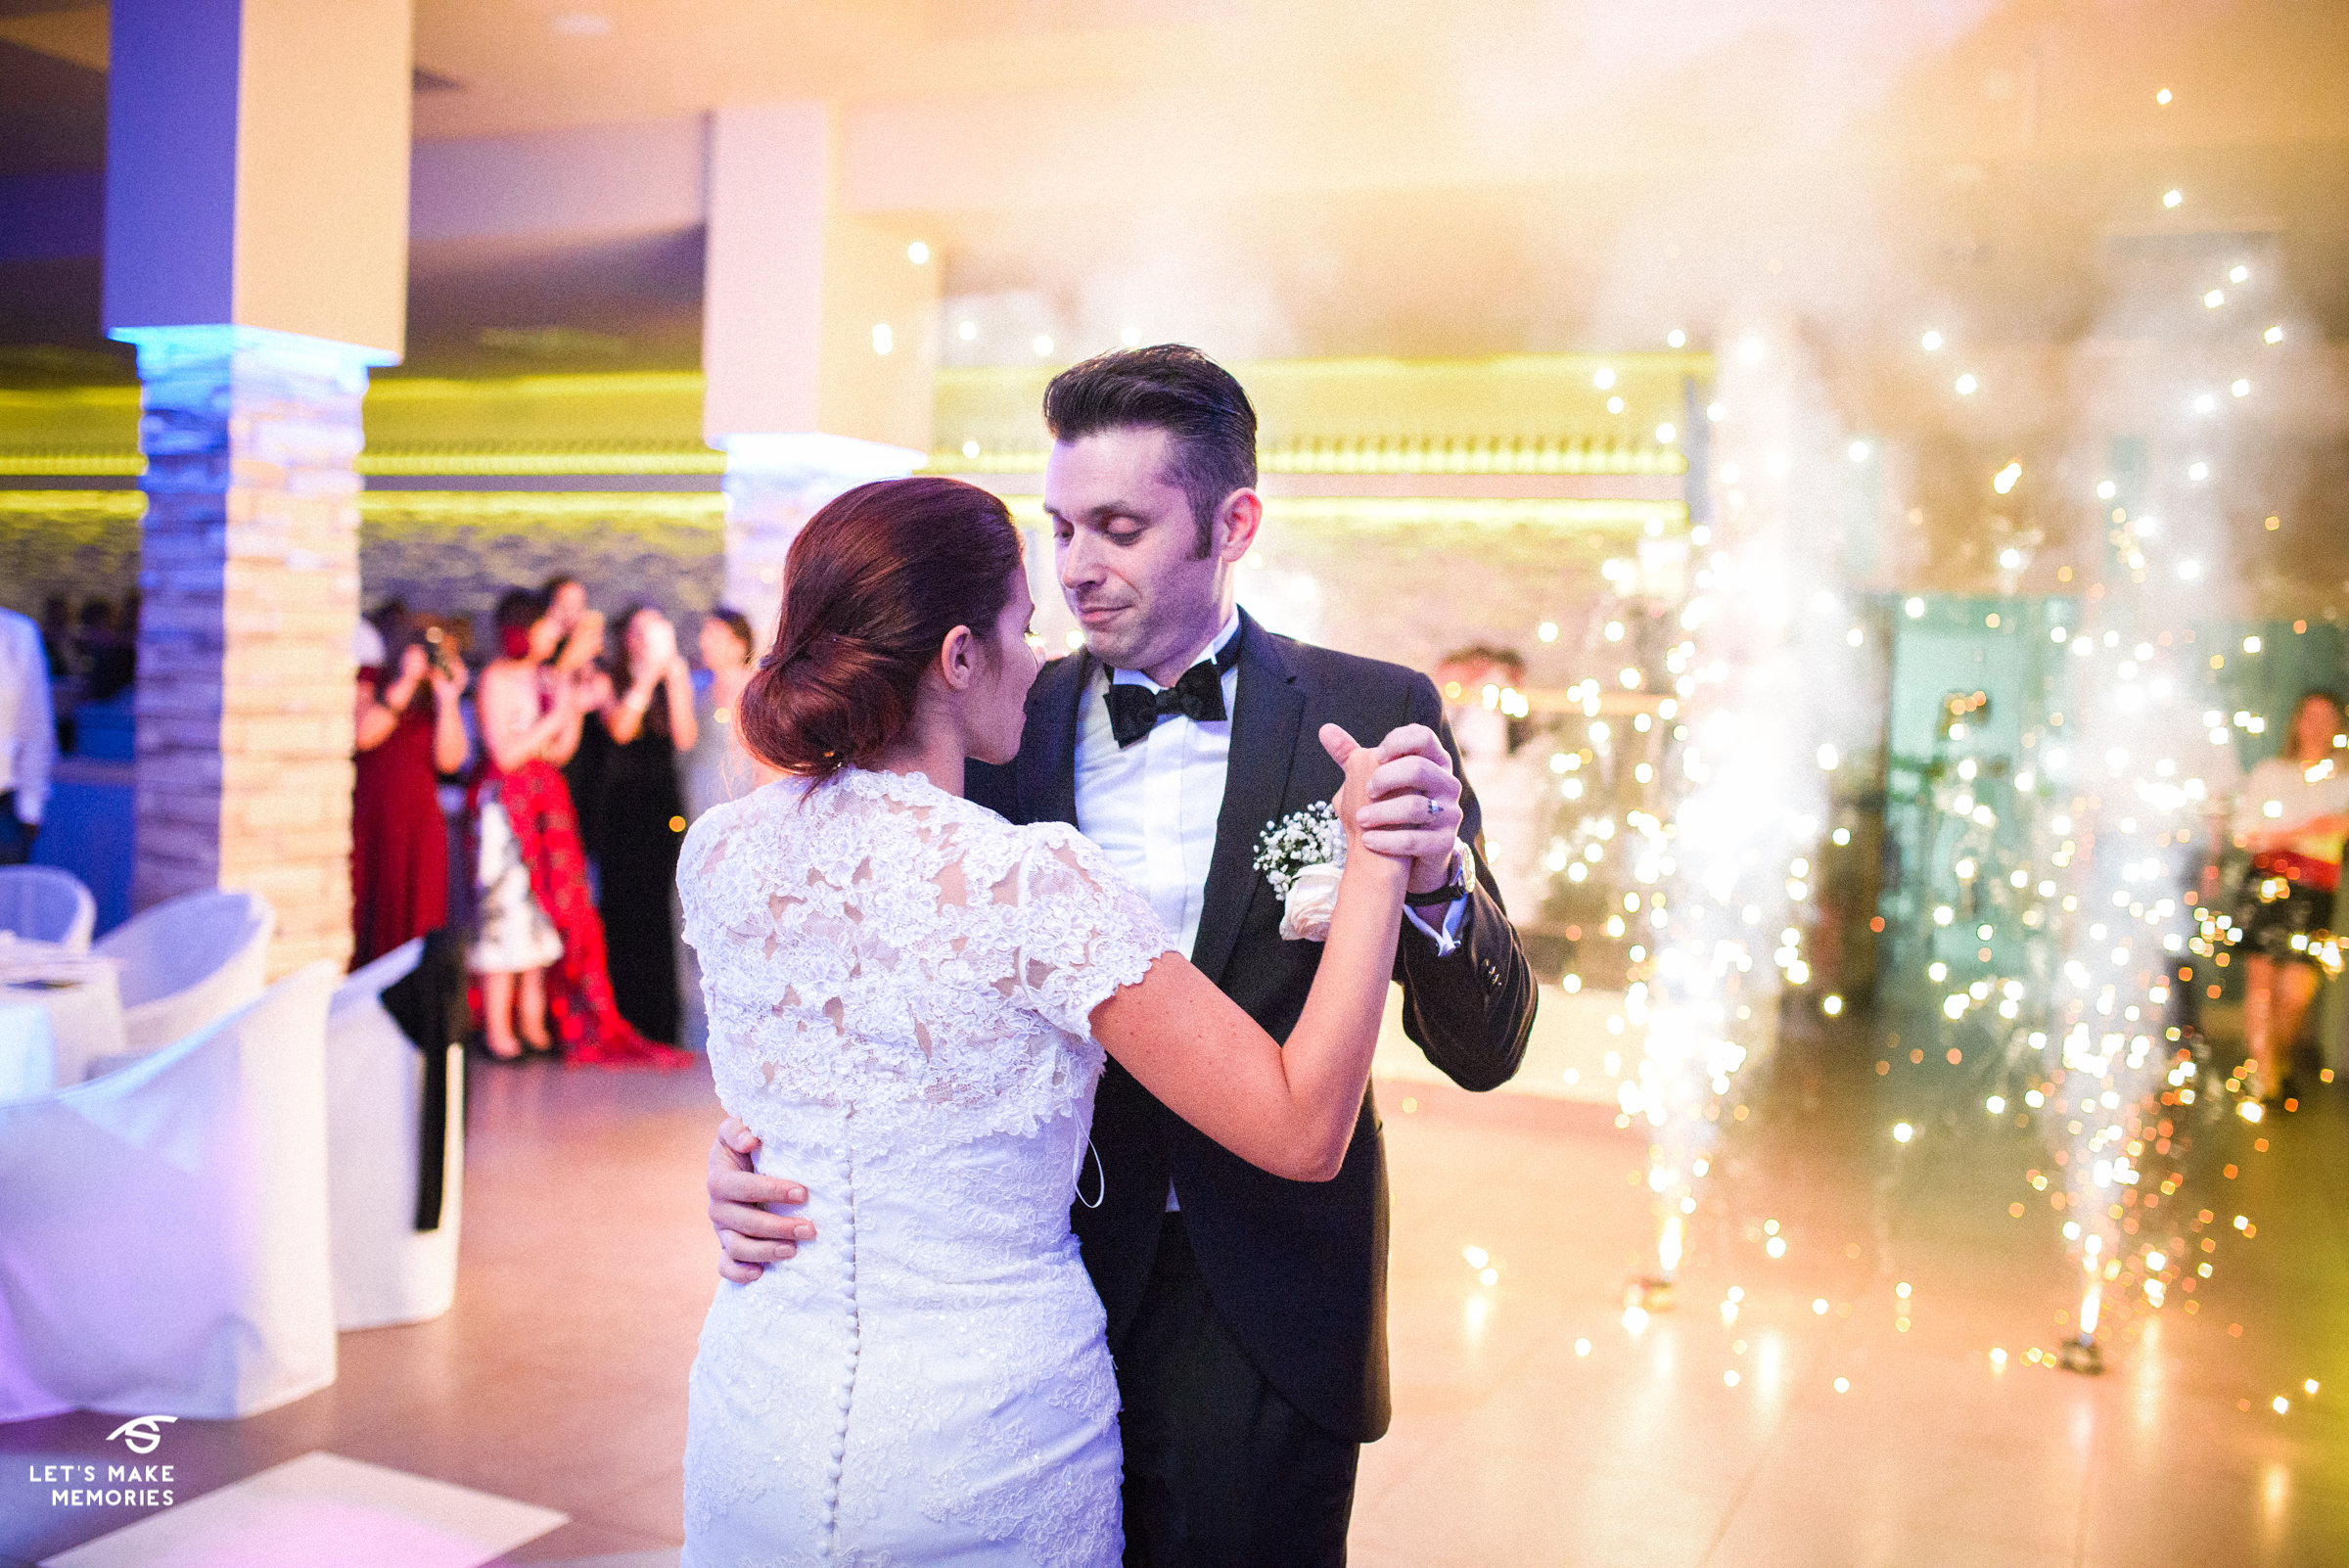 bride and groom dancing their first wedding dance in frond of sparkles and fireworks